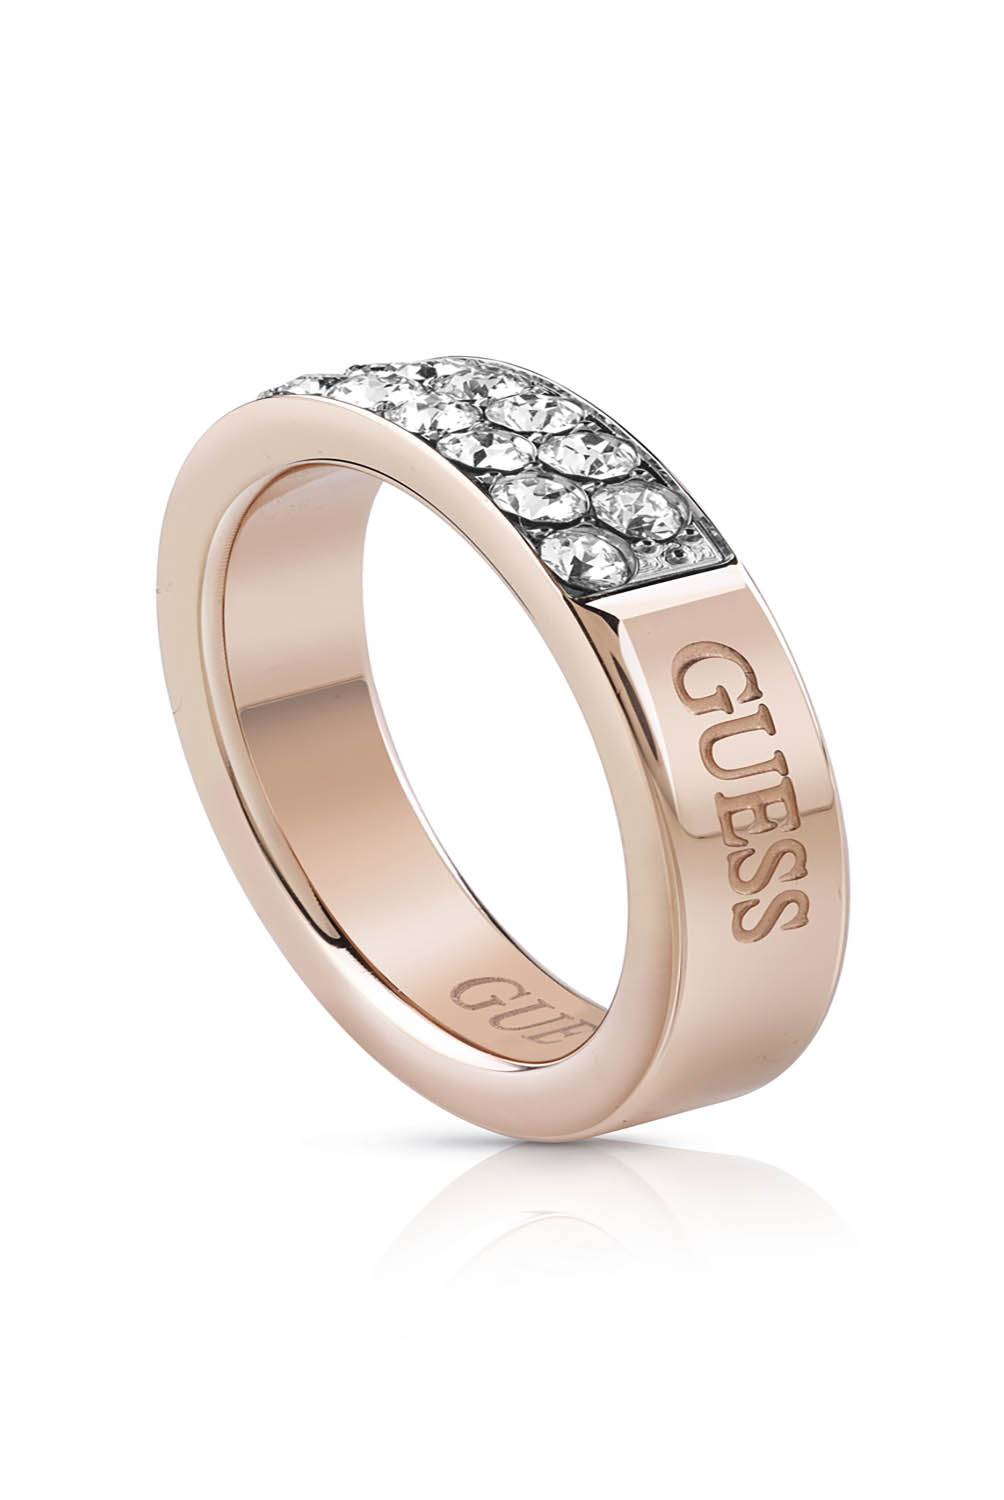 Guess - Anillo Guess Embrace UBR78021-54